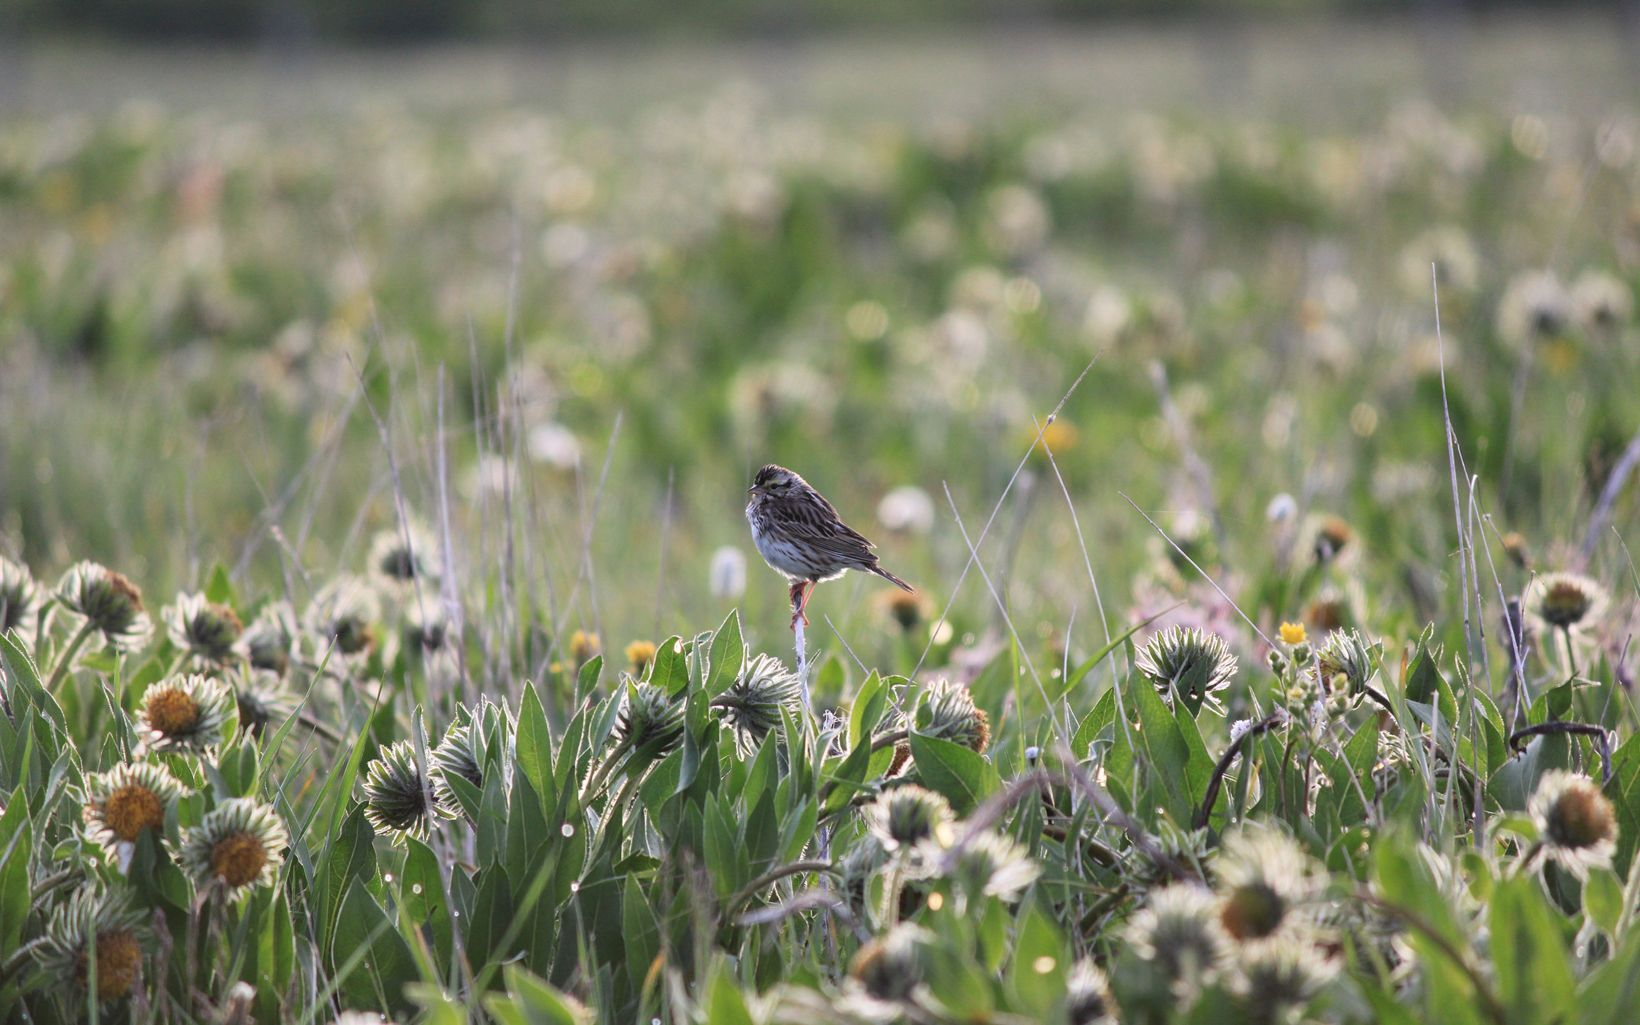 A sparrow perched in a field of yellow flowers.